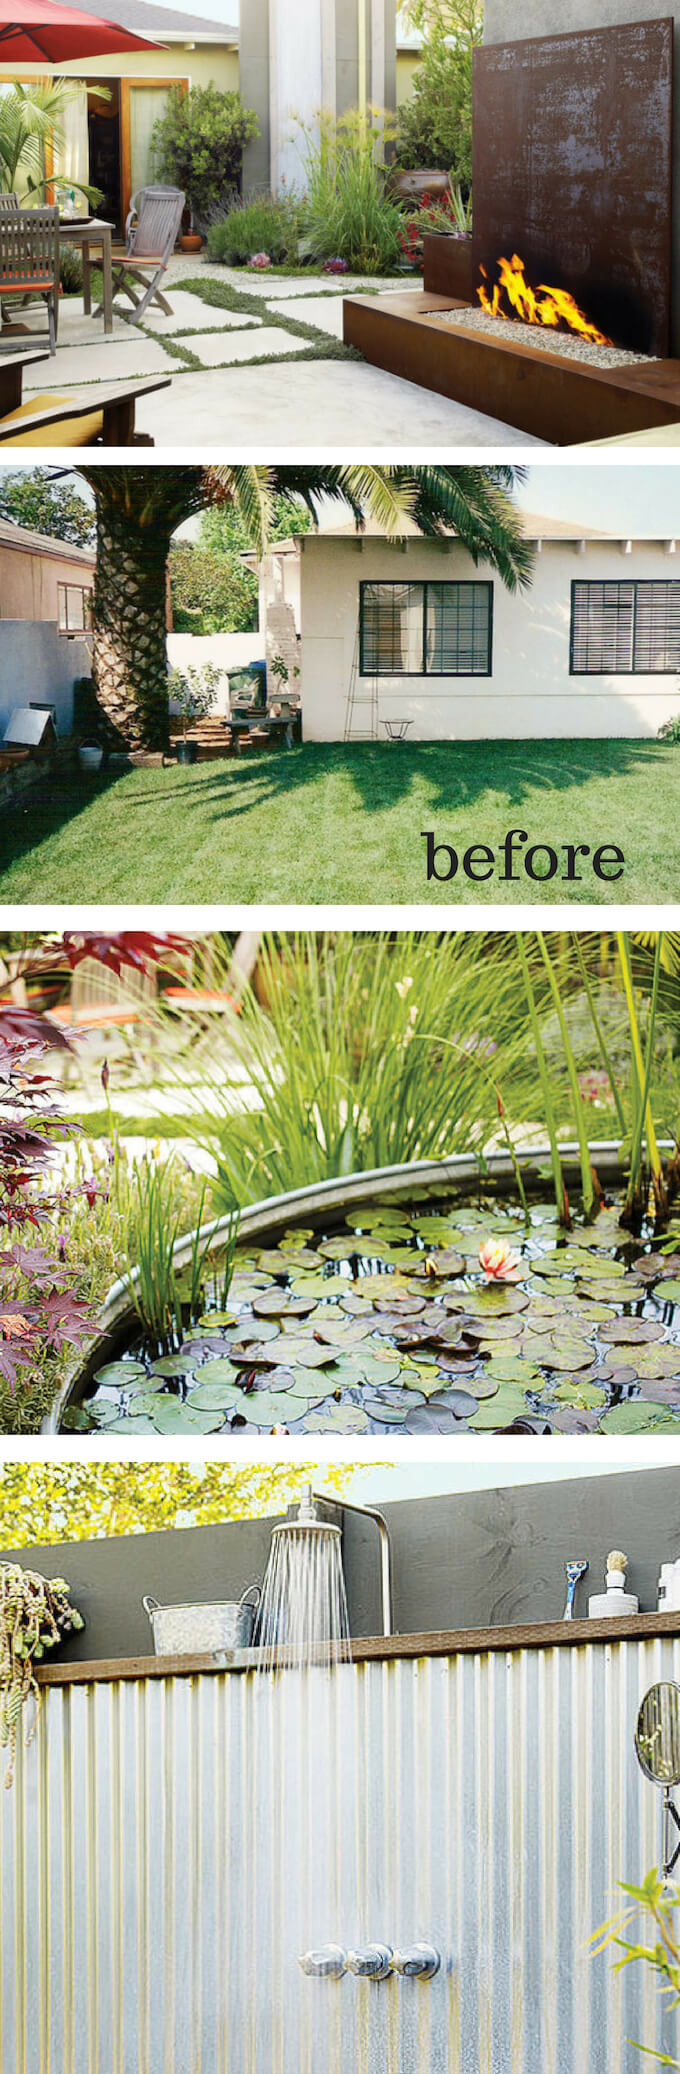 44+ Best Landscaping Design Ideas Without Grass - No Grass ... on Backyard Ideas Without Grass  id=24910